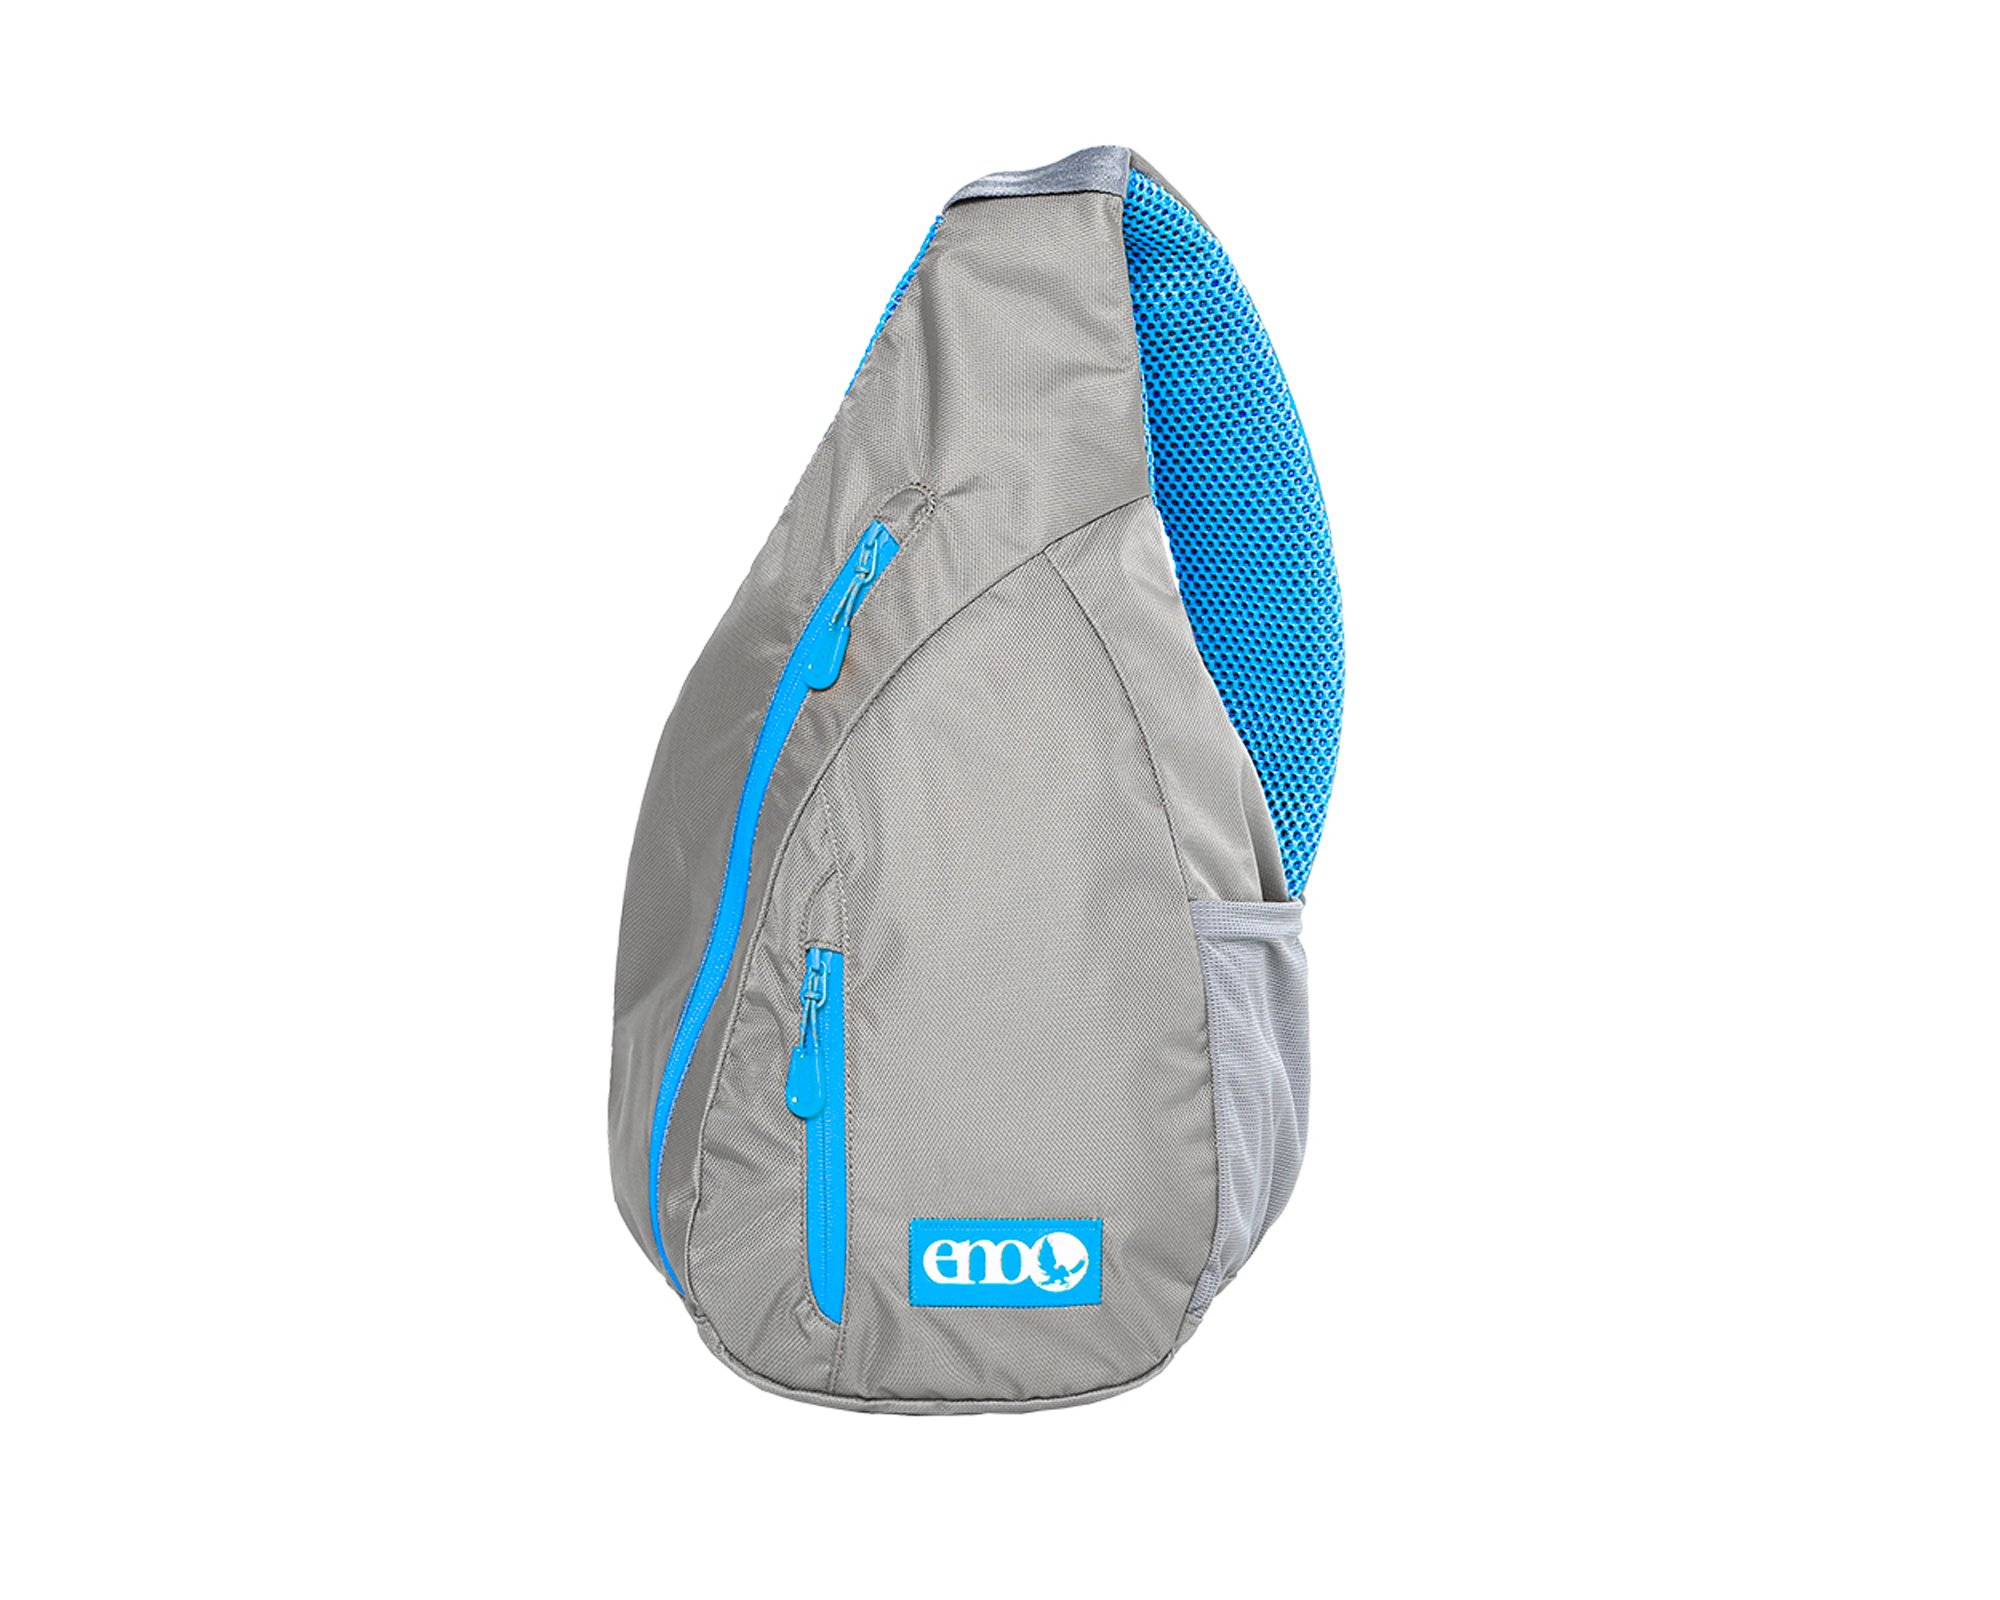 Eagles Nest Outfitters ENO Kanga Sling Backpack, Grey/Aqua